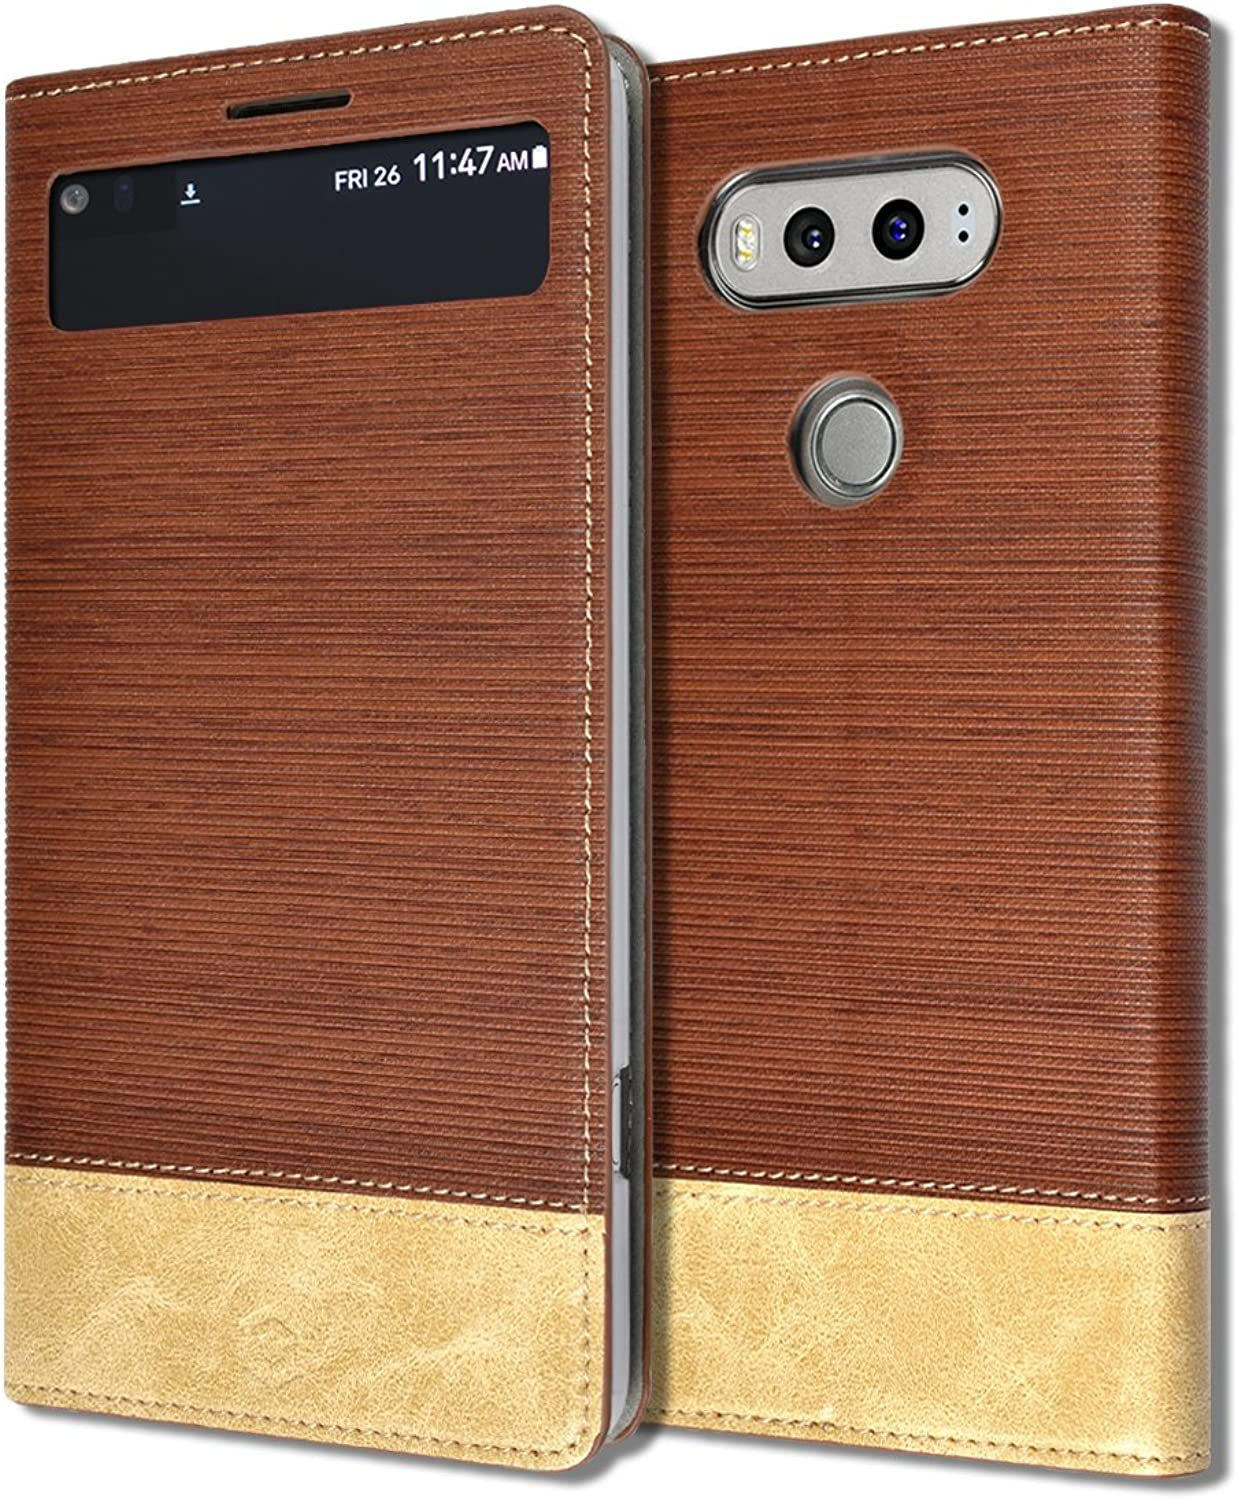 LG V20 [ Orbit Flex Series ] [ Window View Flip Cover ] Diary Book Leather ID Credit Card Wallet Standing Soft Ultra Slim Fit Textured Grip Kickstand Case F800 LGV20 (Brown)